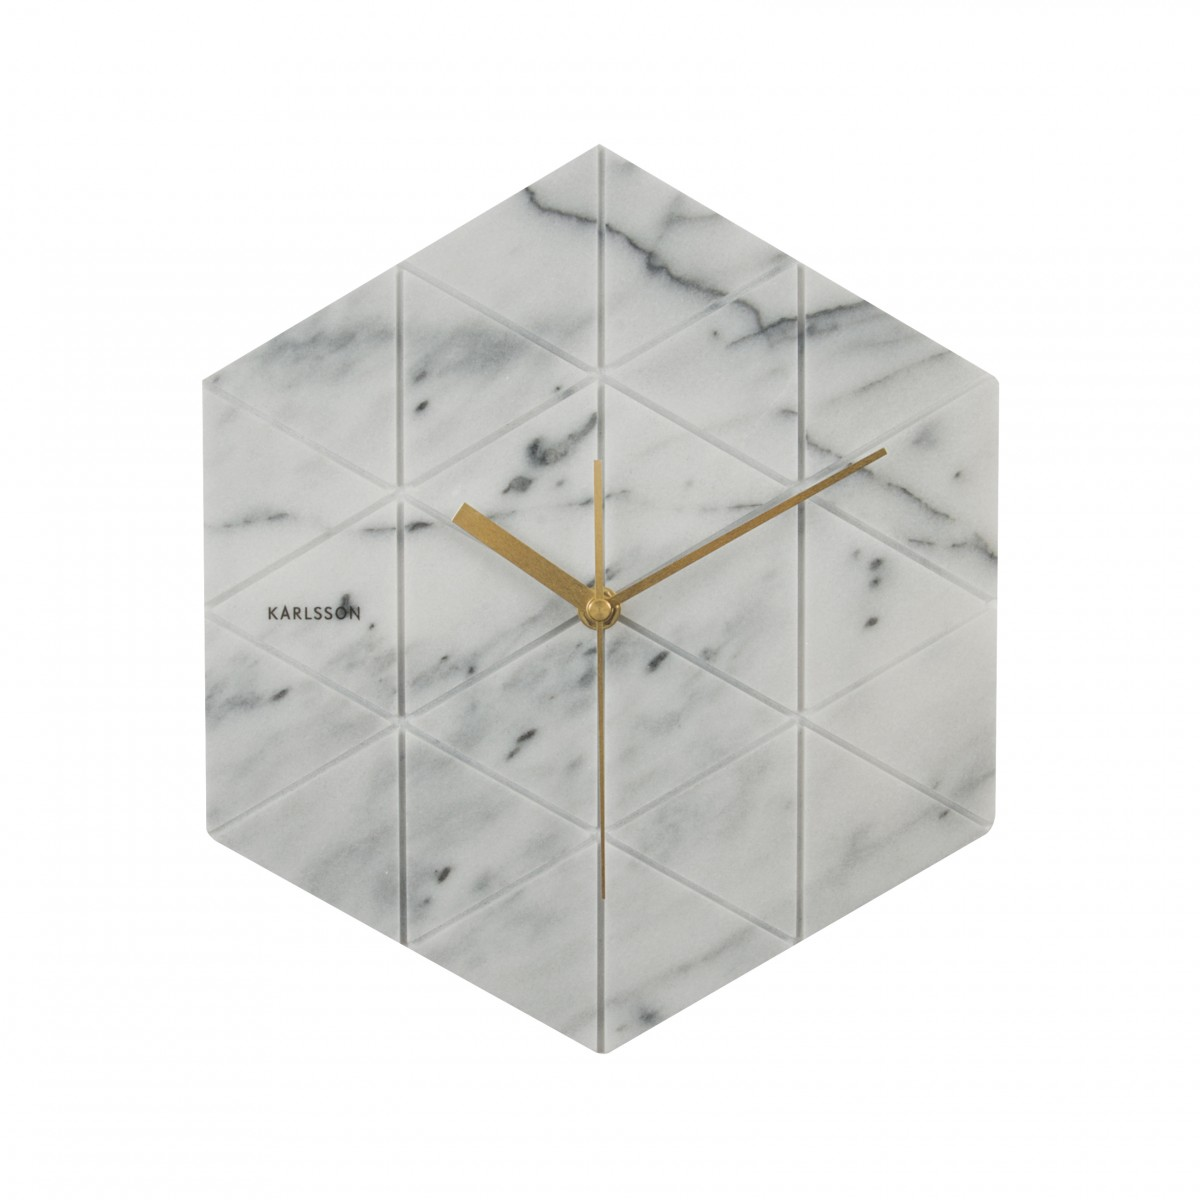 Ceas de perete Marble Hexagon alb, BOX32 Design, Karlsson